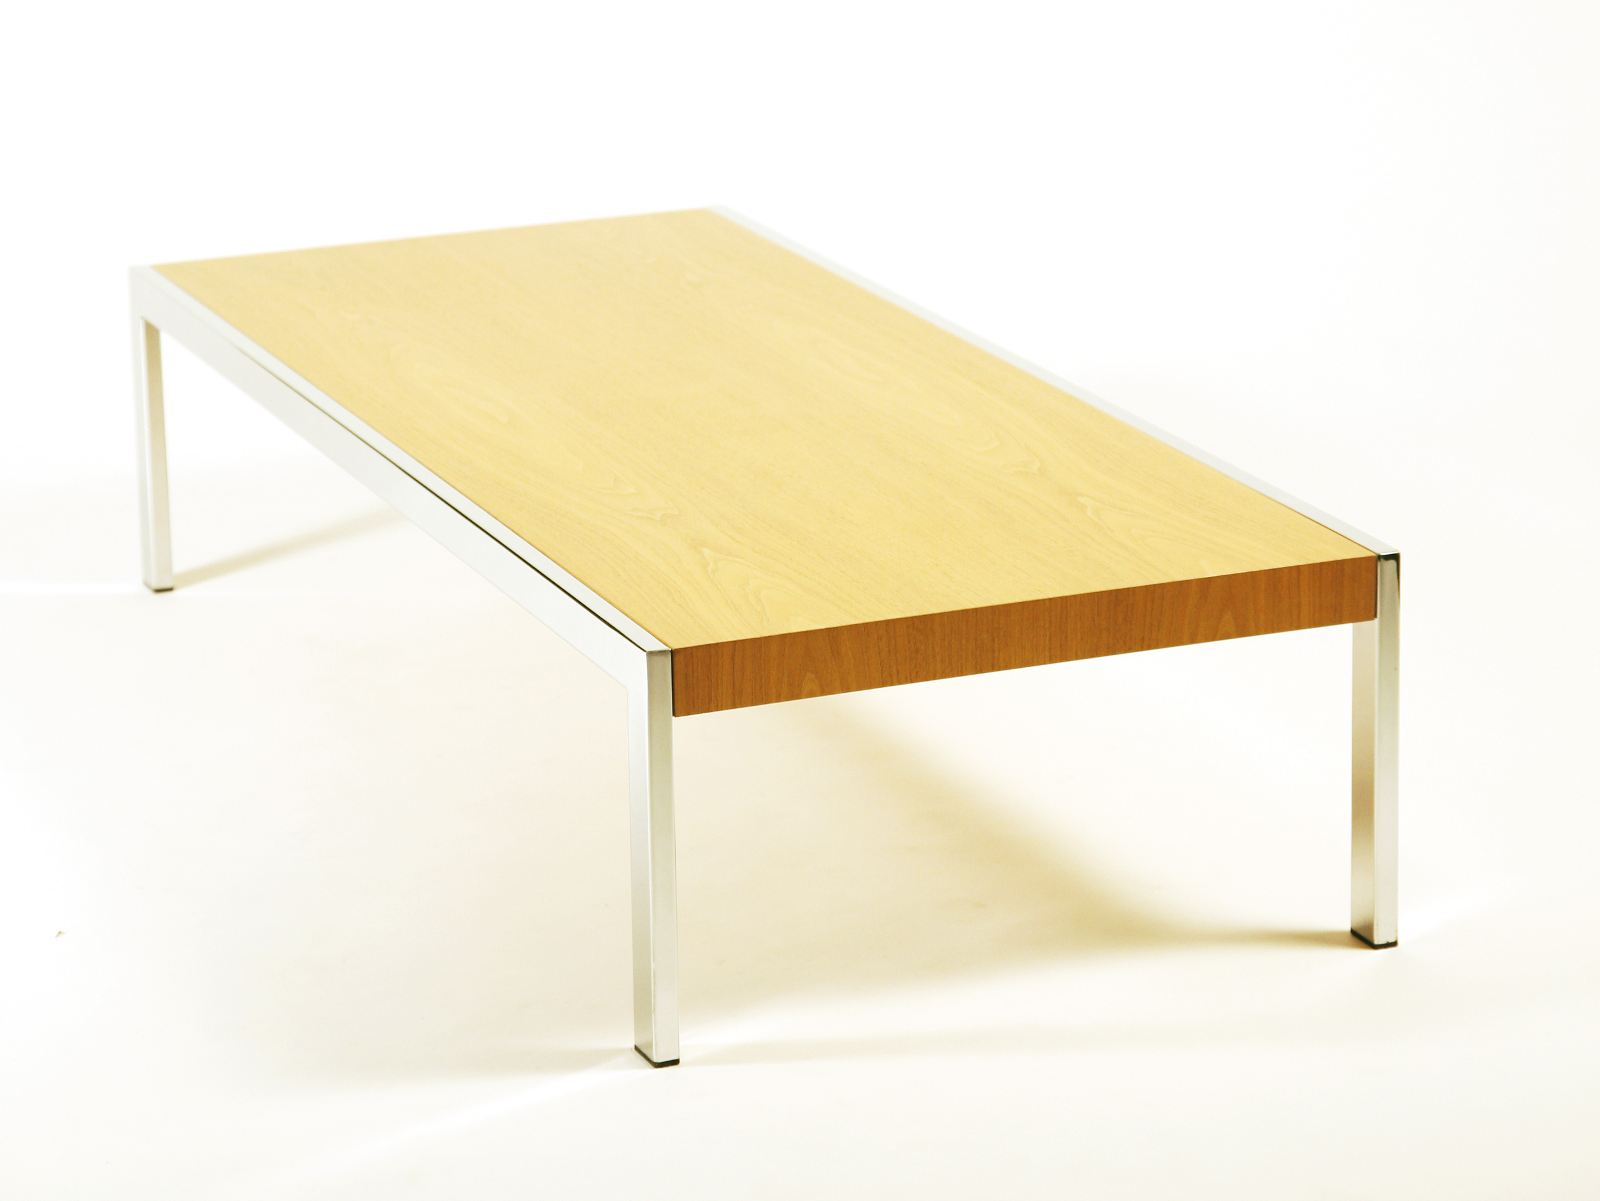 Long Slim Coffee Table Slim Coffee Table By Inno Interior Oy Design Harri Korhonen